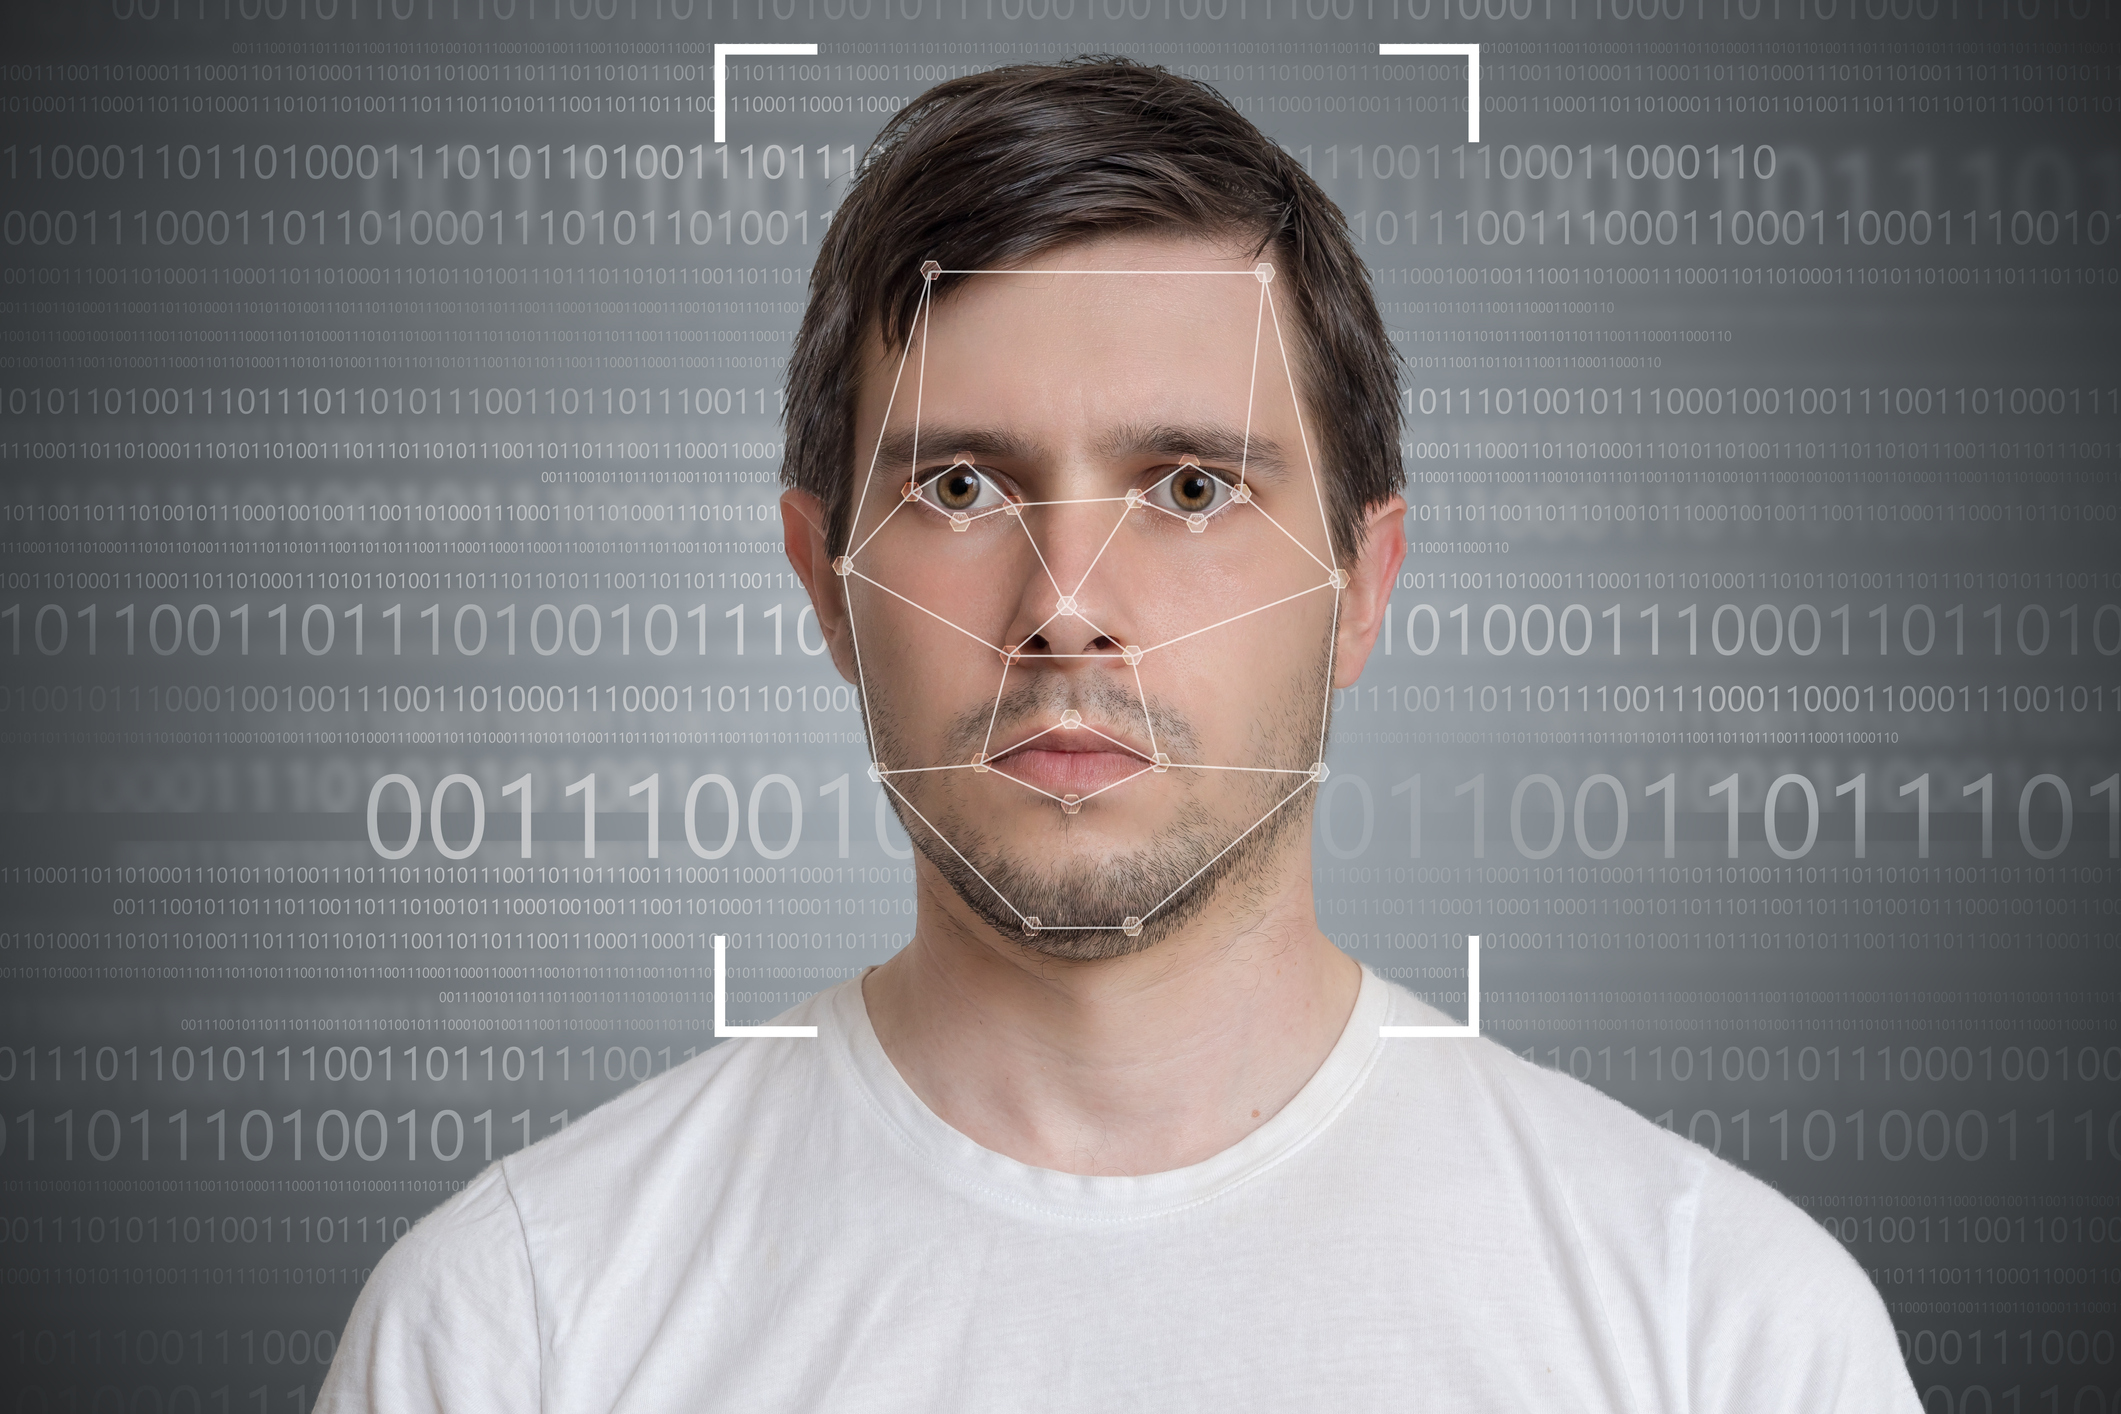 Face detection and recognition of man. Computer vision concept. Binary code in background.